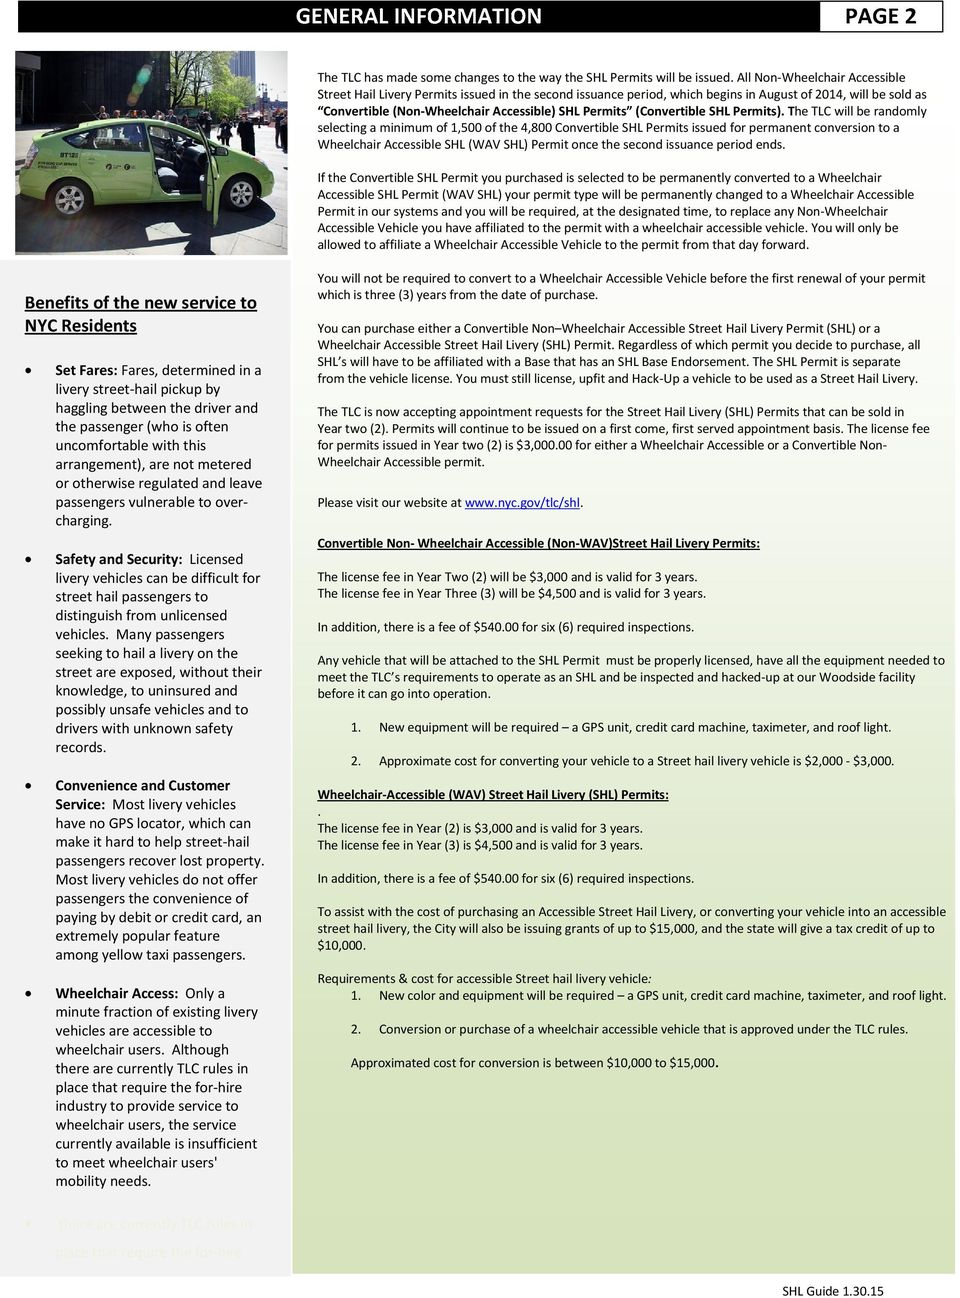 Guide To Understanding The Street Hail Livery Shl Service Rules And Requirements Pdf Free Download